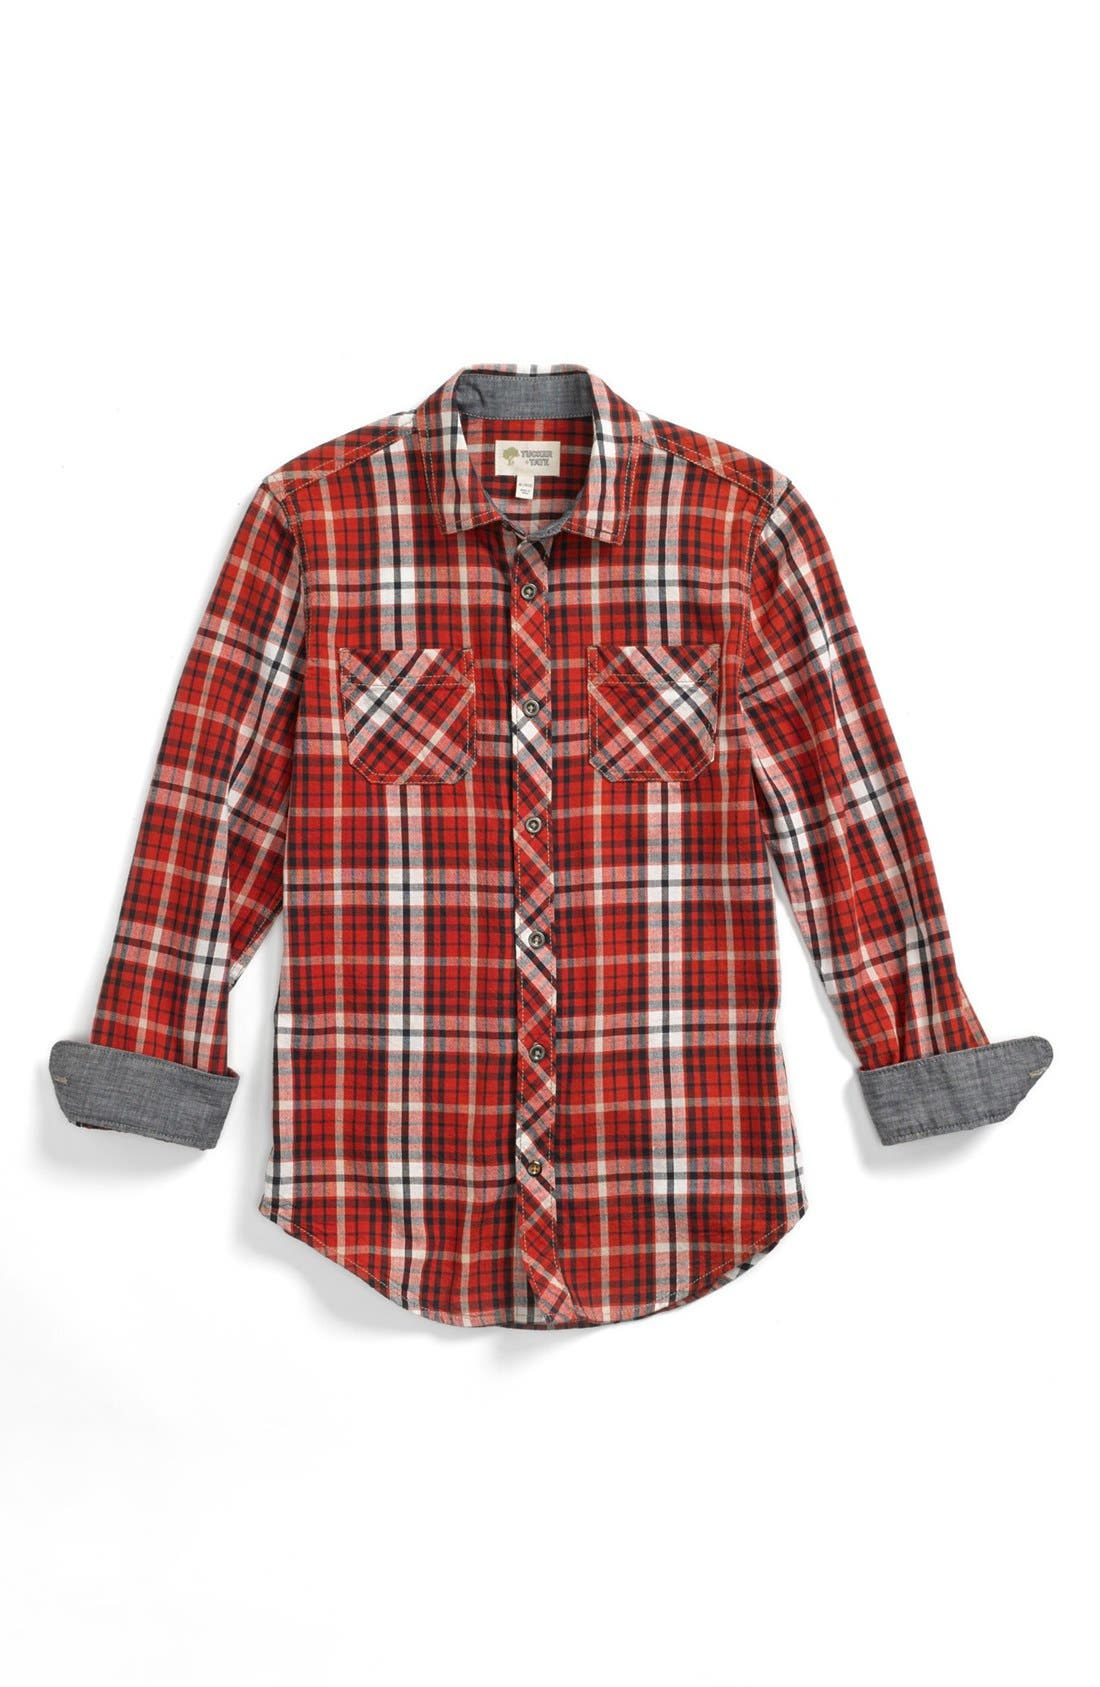 Main Image - Tucker + Tate Plaid Shirt & Jeans (Little Boys & Big Boys)